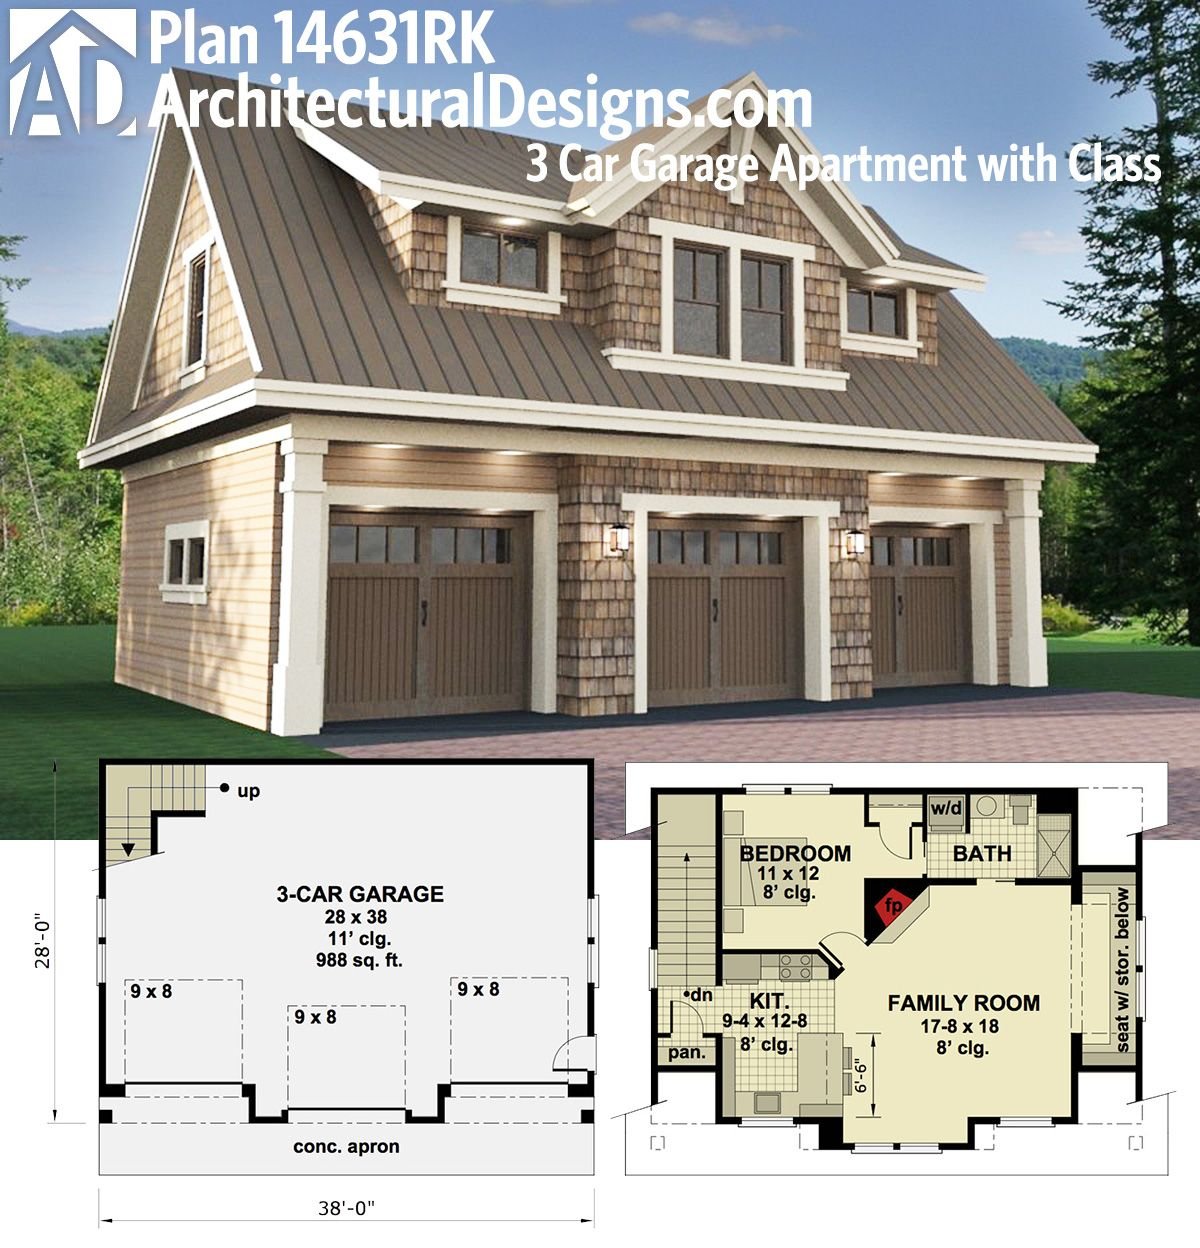 Architectural designs carriage house plan 14631rk gives for Cost to build your own garage